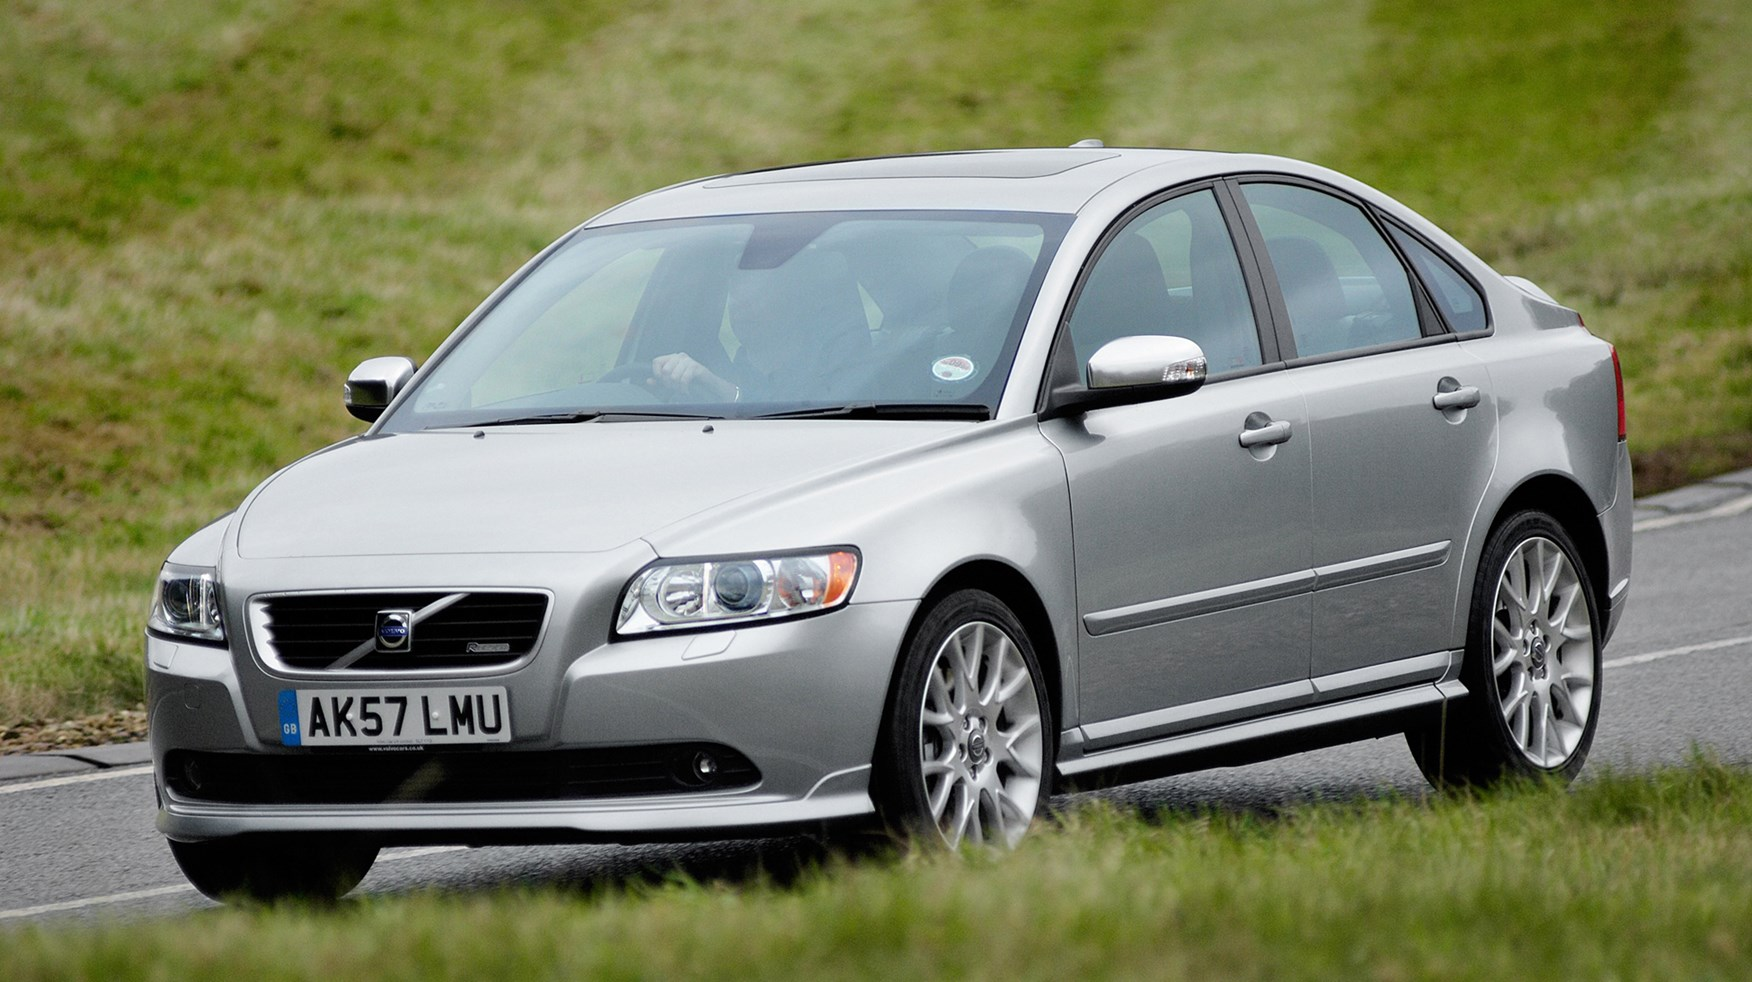 Volvo S40 Saloon Review (2004 - 2012) | Parkers